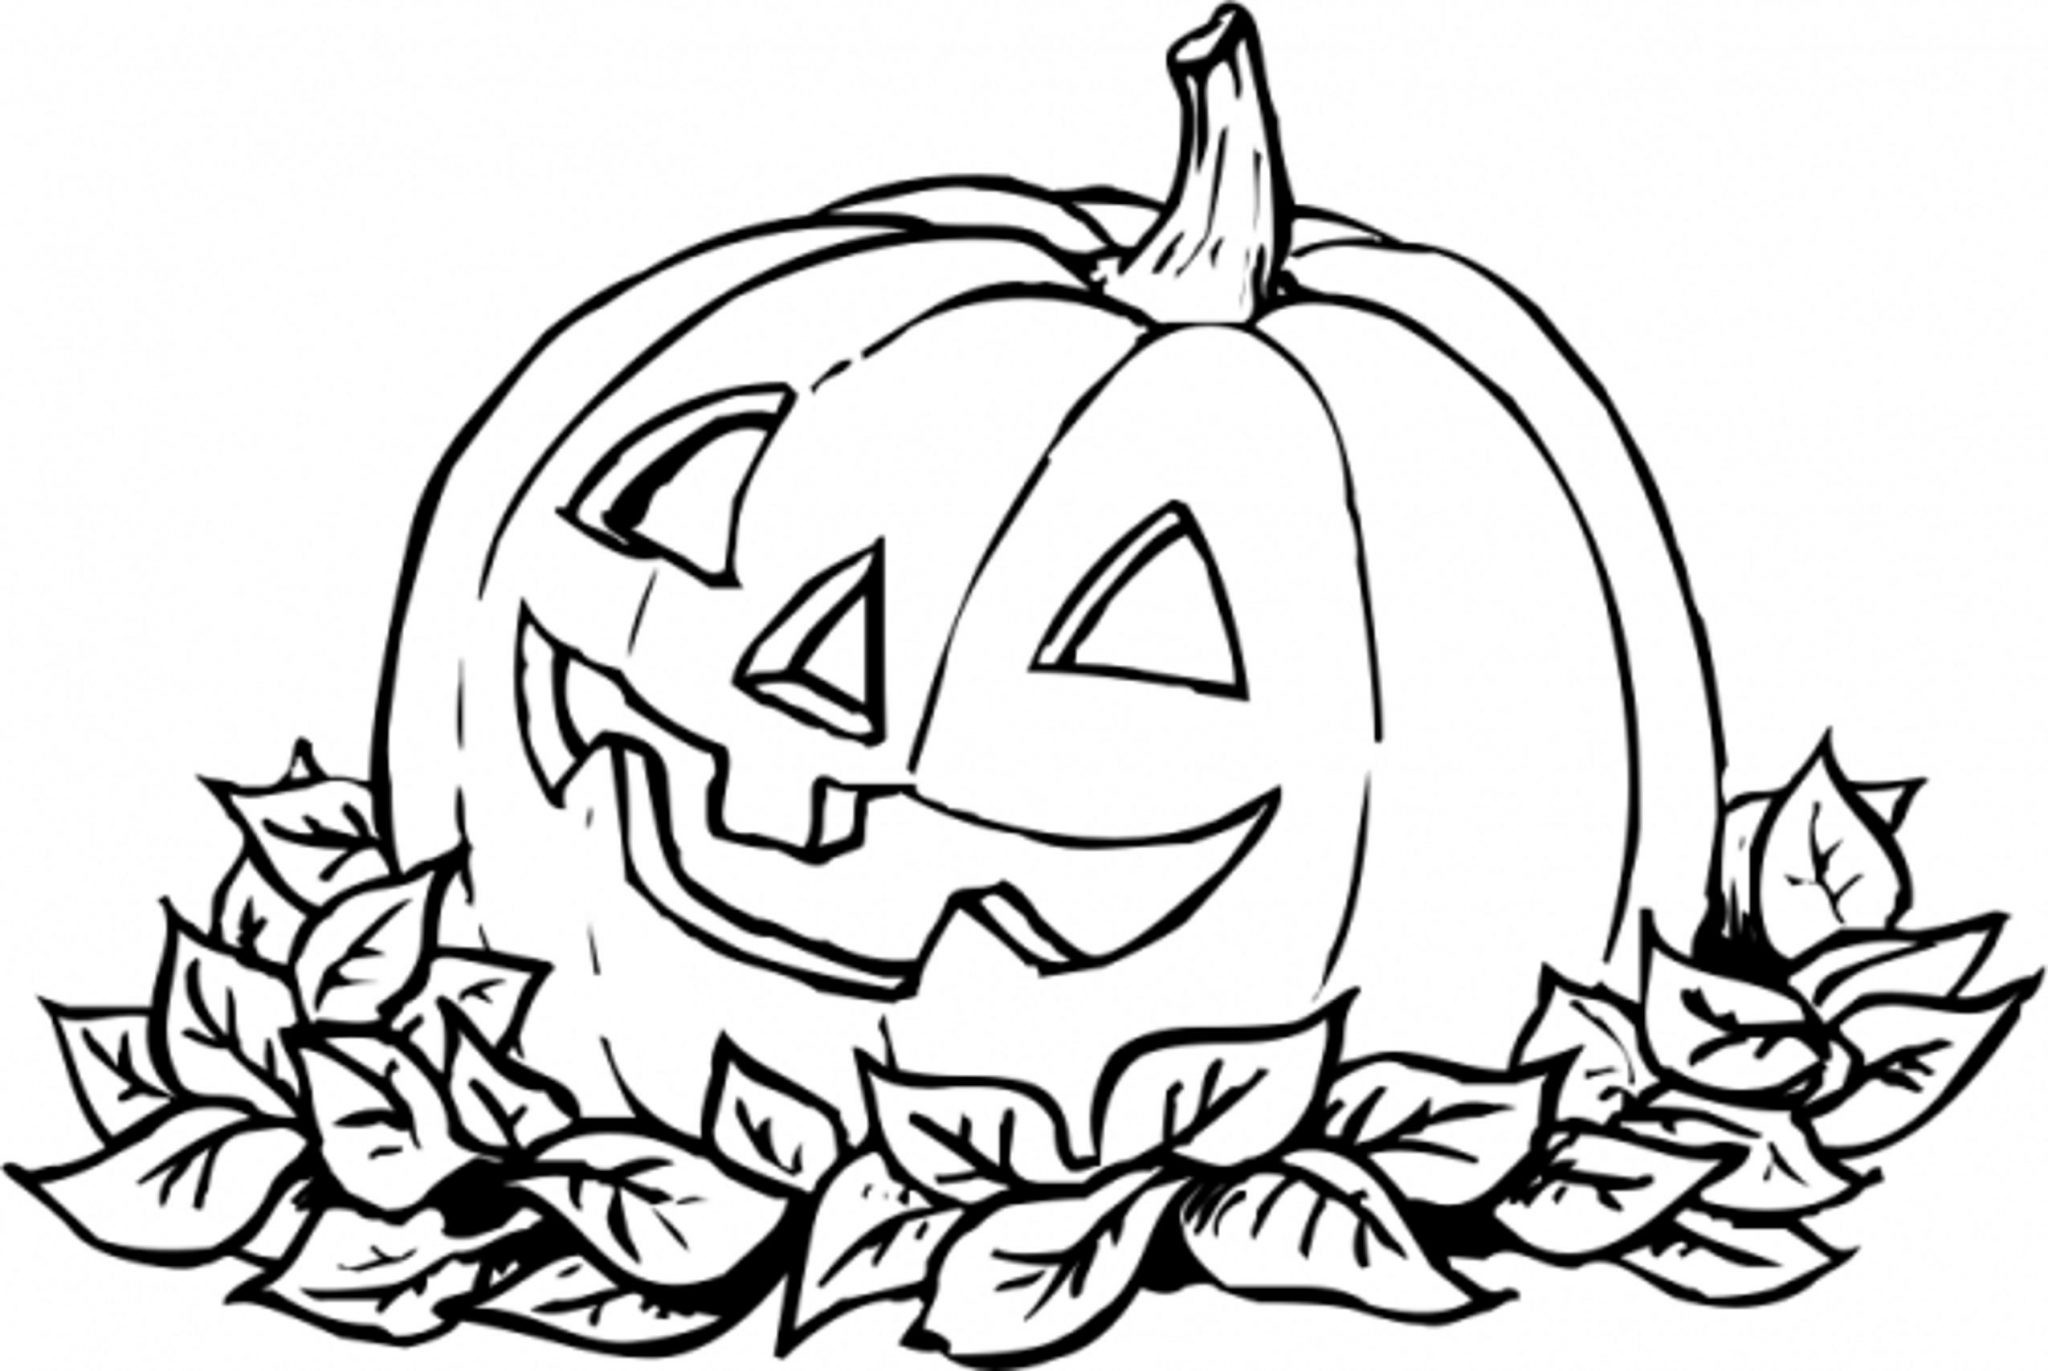 halloween pictures of pumpkins to color pumpkin drawing for kids at getdrawings free download pumpkins halloween color to of pictures